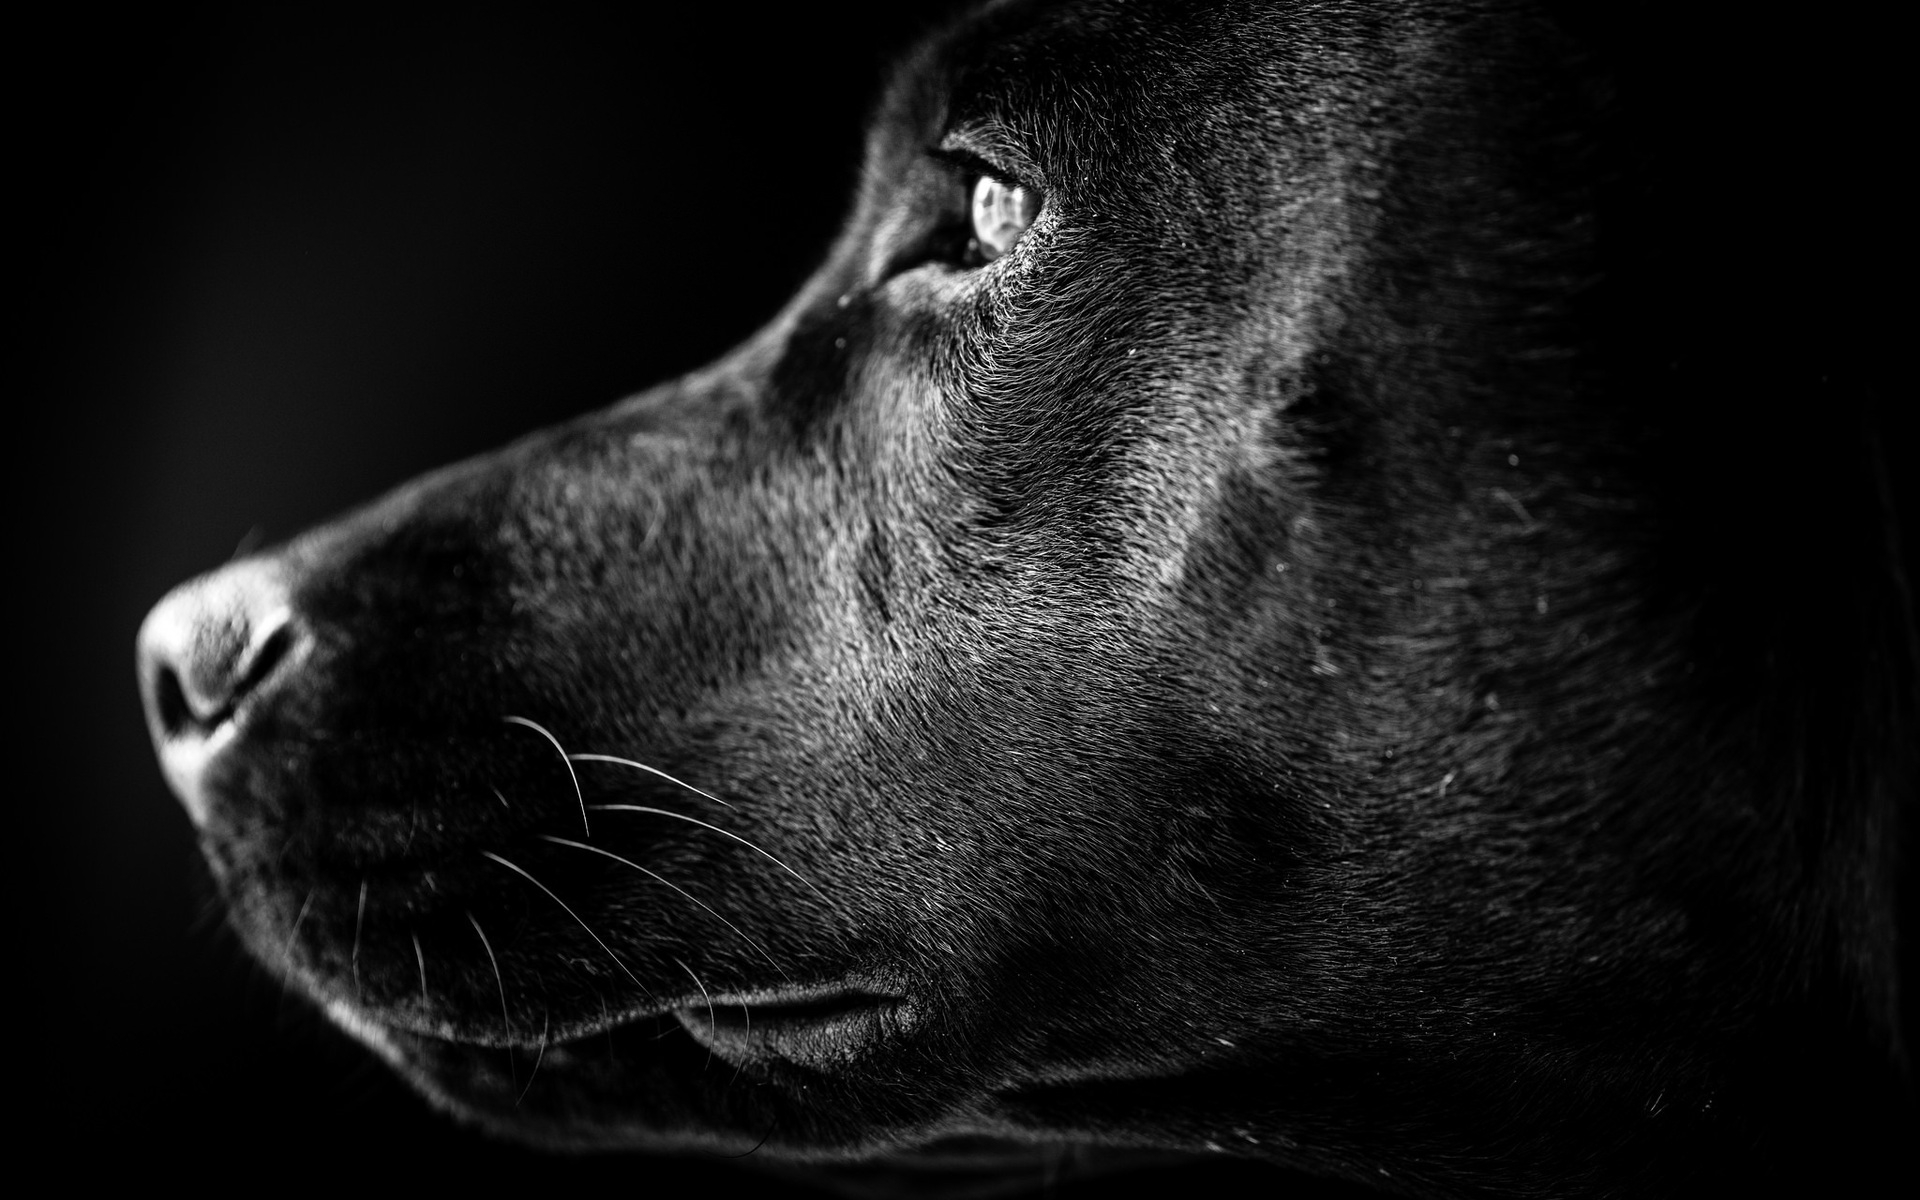 Free Download Black Labrador Profile 4k Wide Uhd Wallpaper Hd Wallpapers 1920x1200 For Your Desktop Mobile Tablet Explore 72 Black Labrador Wallpaper Lab Puppy Wallpaper Black Lab Wallpaper Desktop